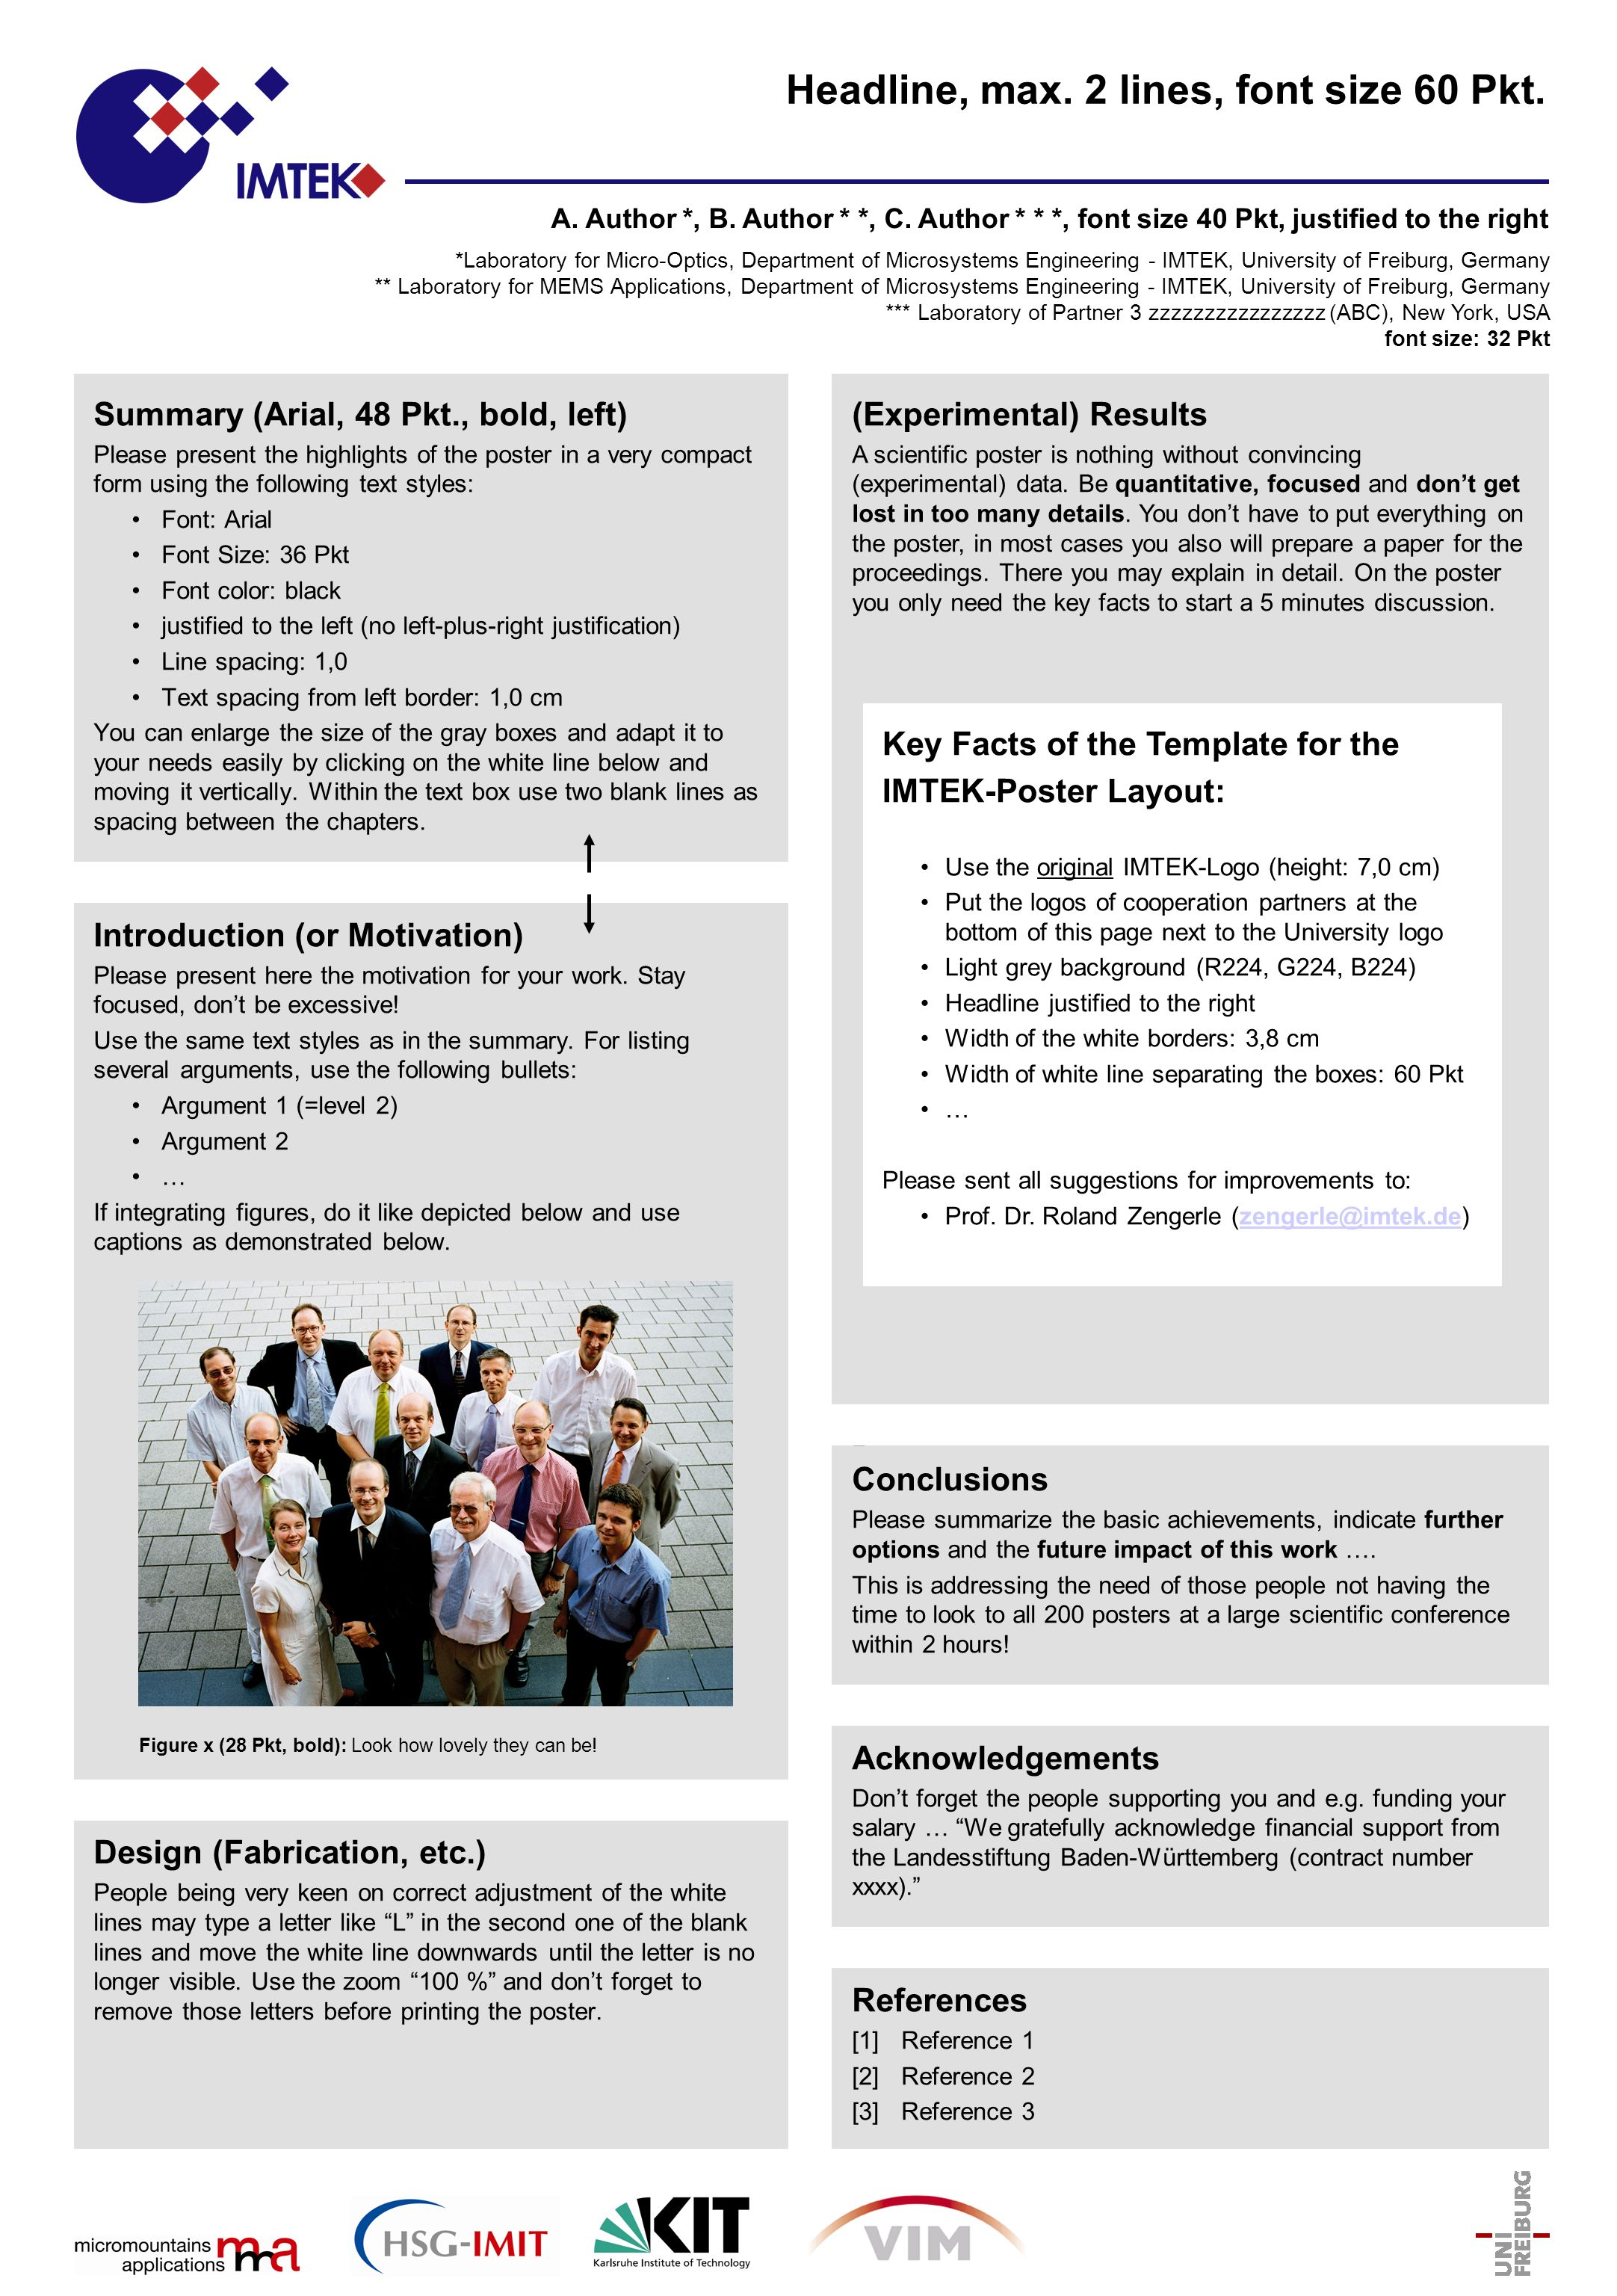 Font size for scientific poster